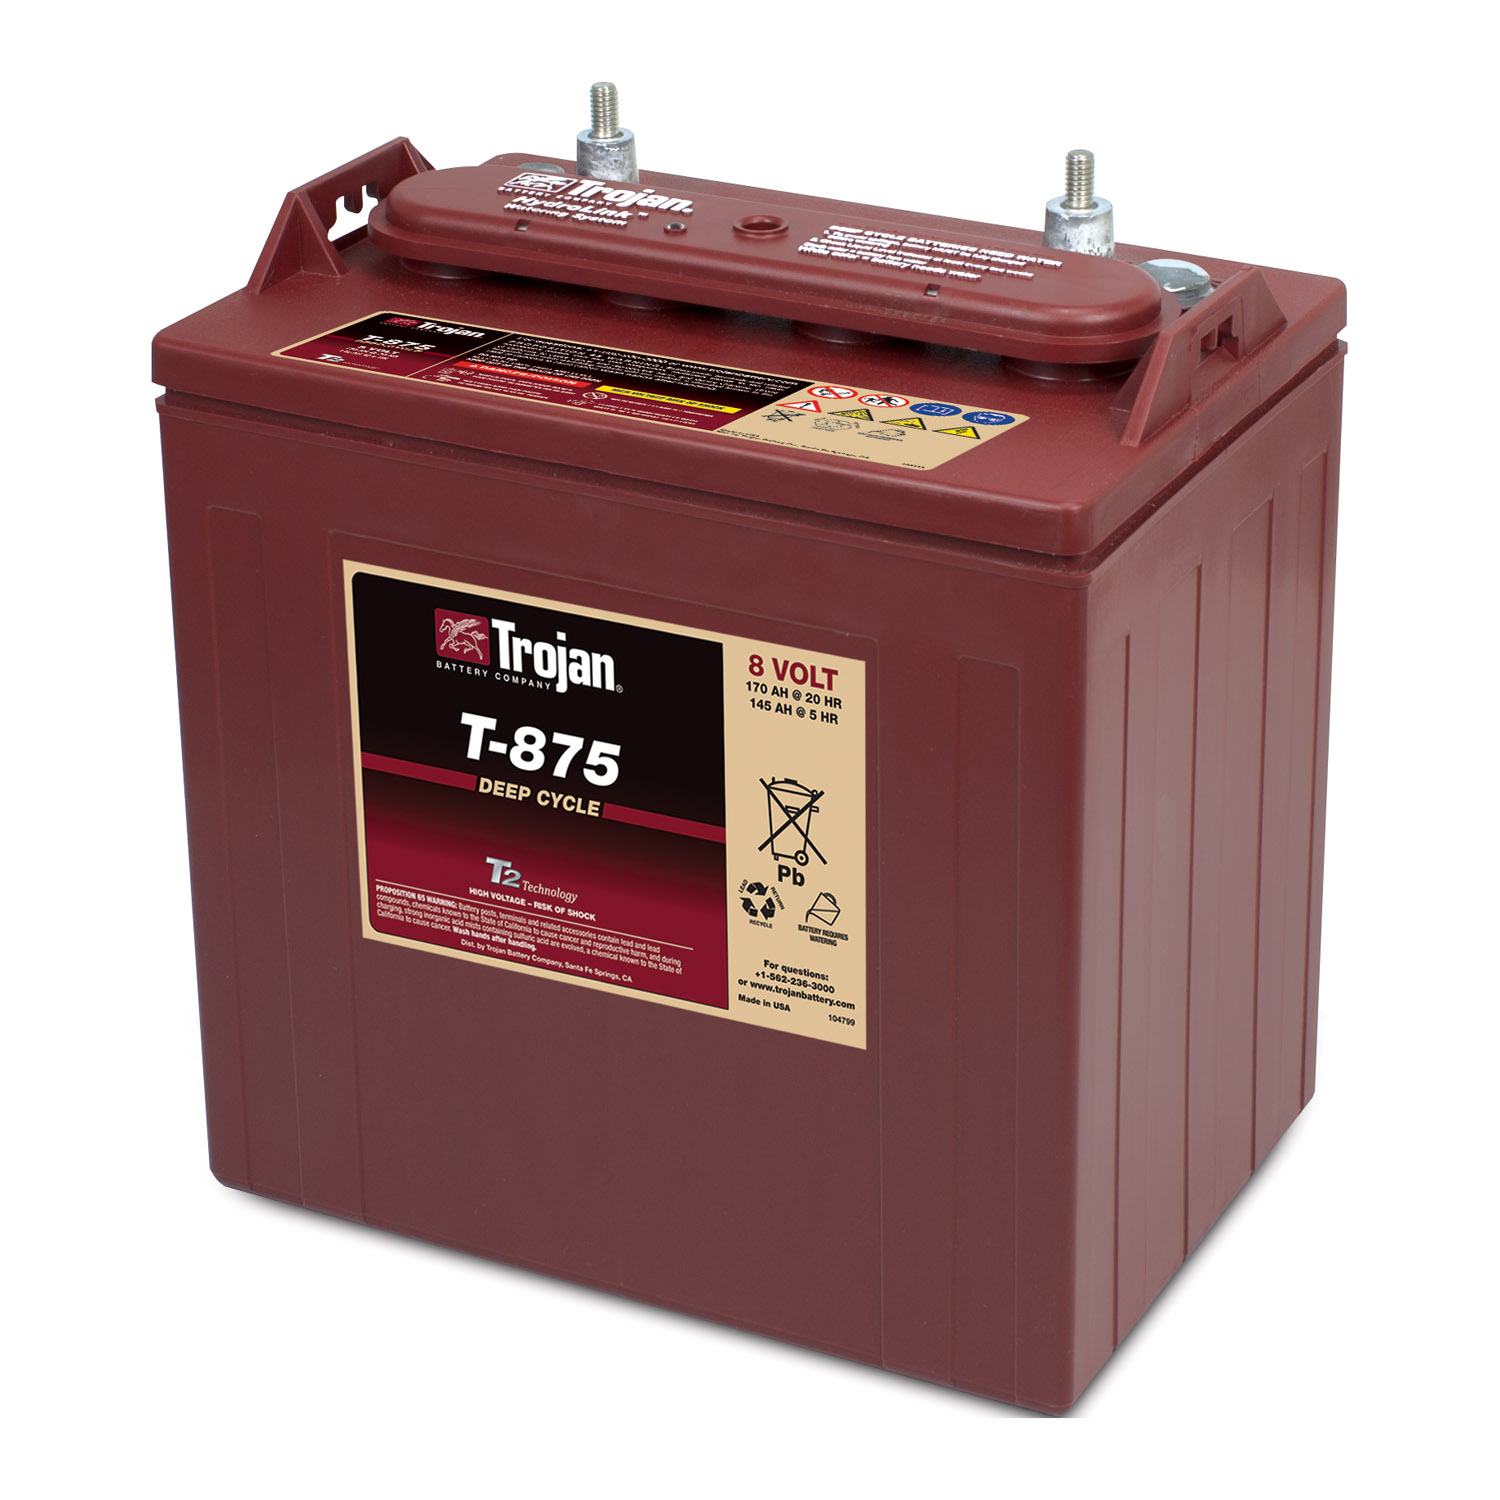 t875 trojan 8 volt deep cycle battery. Black Bedroom Furniture Sets. Home Design Ideas